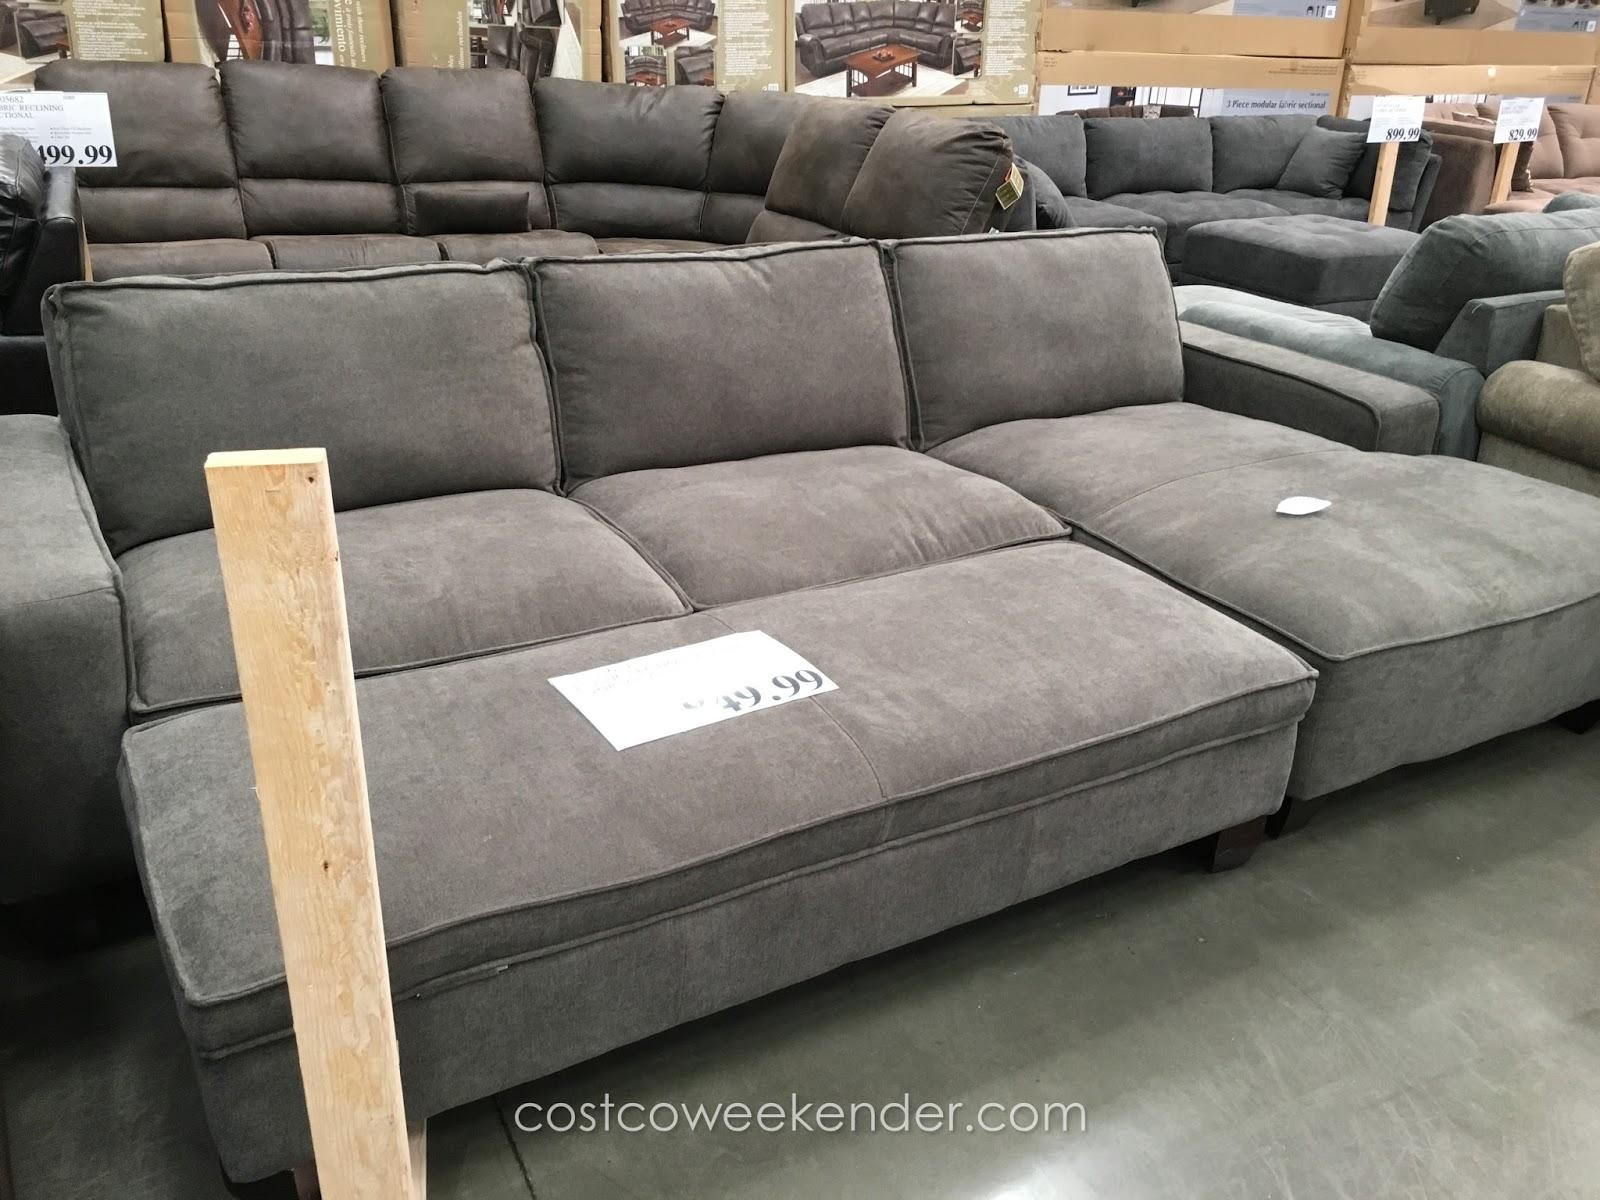 Sofas Center : Power Reclining Sofa Costco Sofas Center Berkline Inside Berkline Sofas (Image 16 of 20)